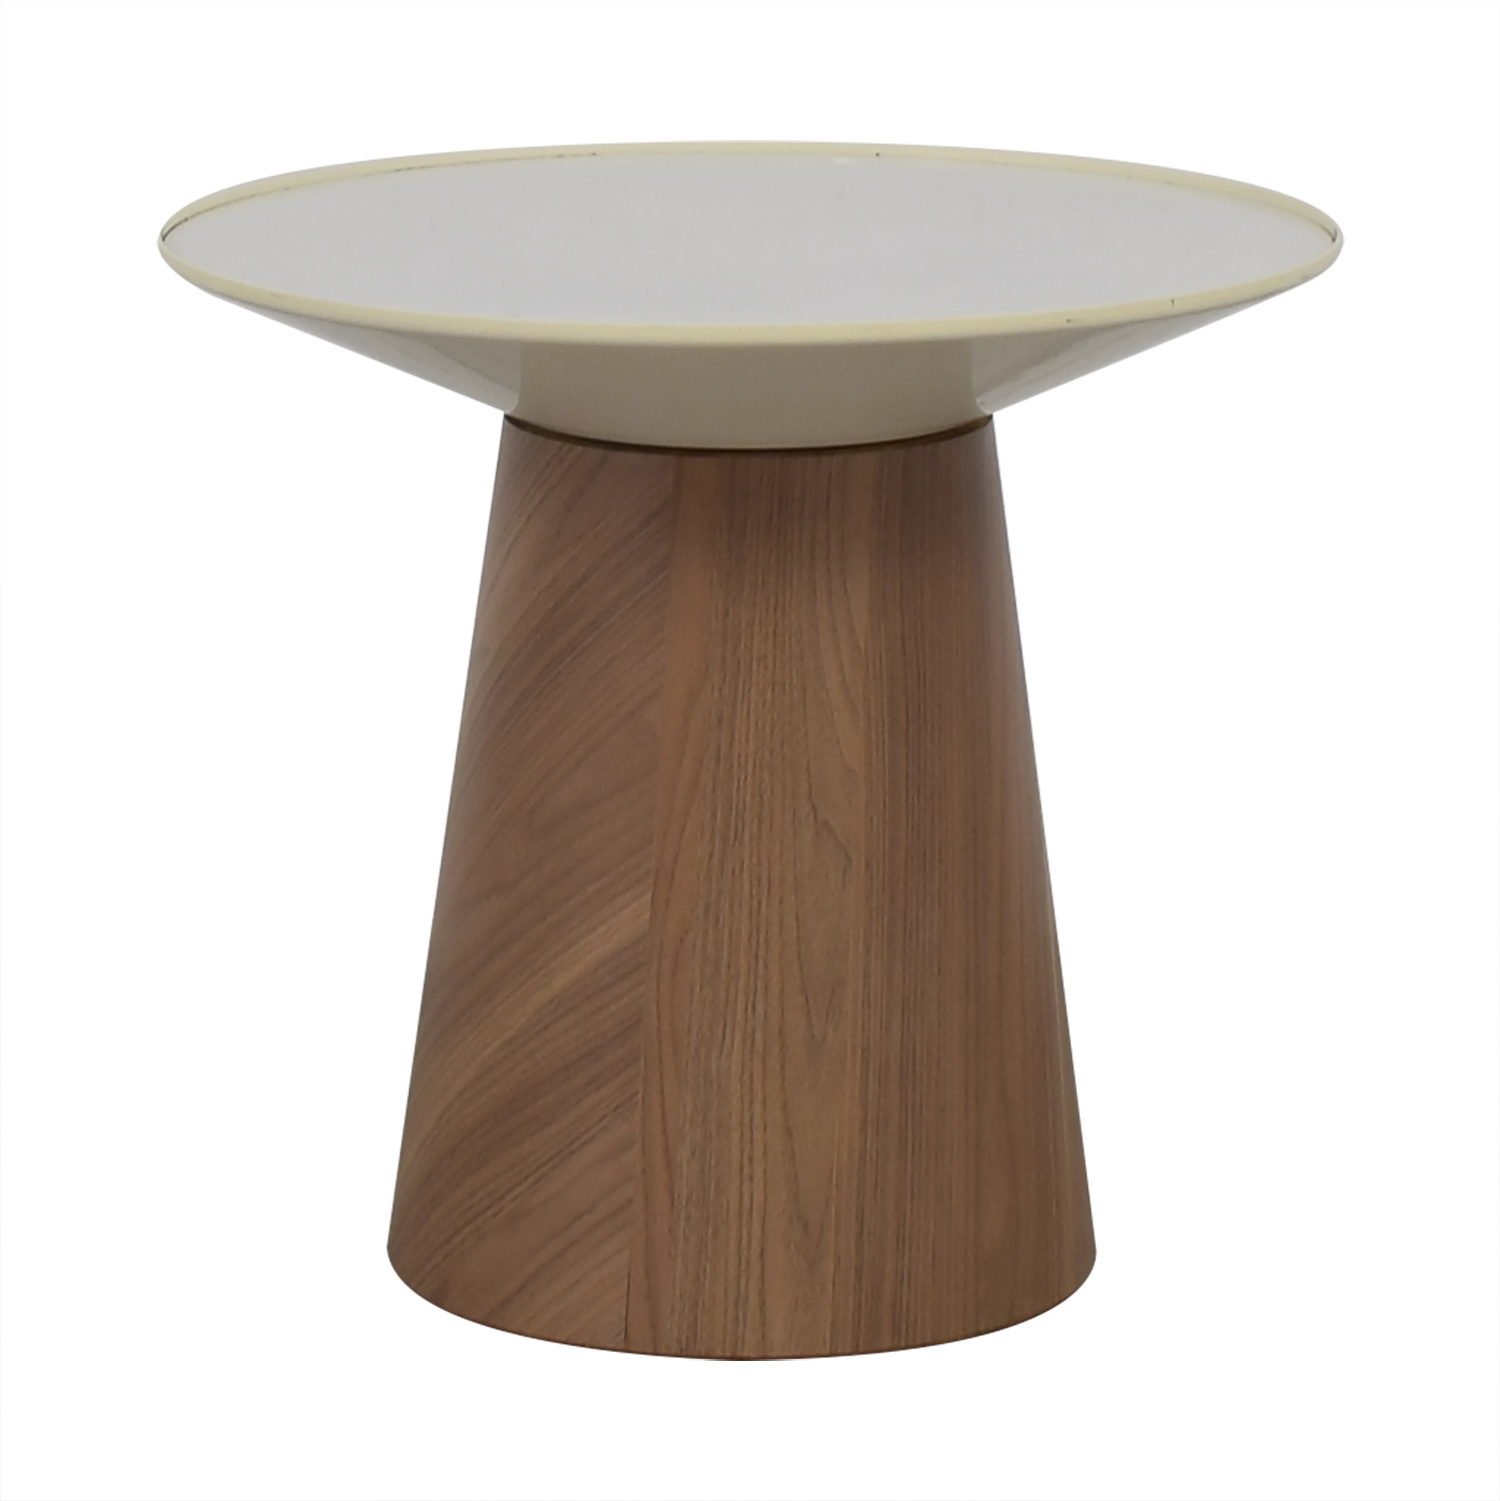 Steelcase Turnstone Steelcase Turnstone Campfire Round Paper Table coupon